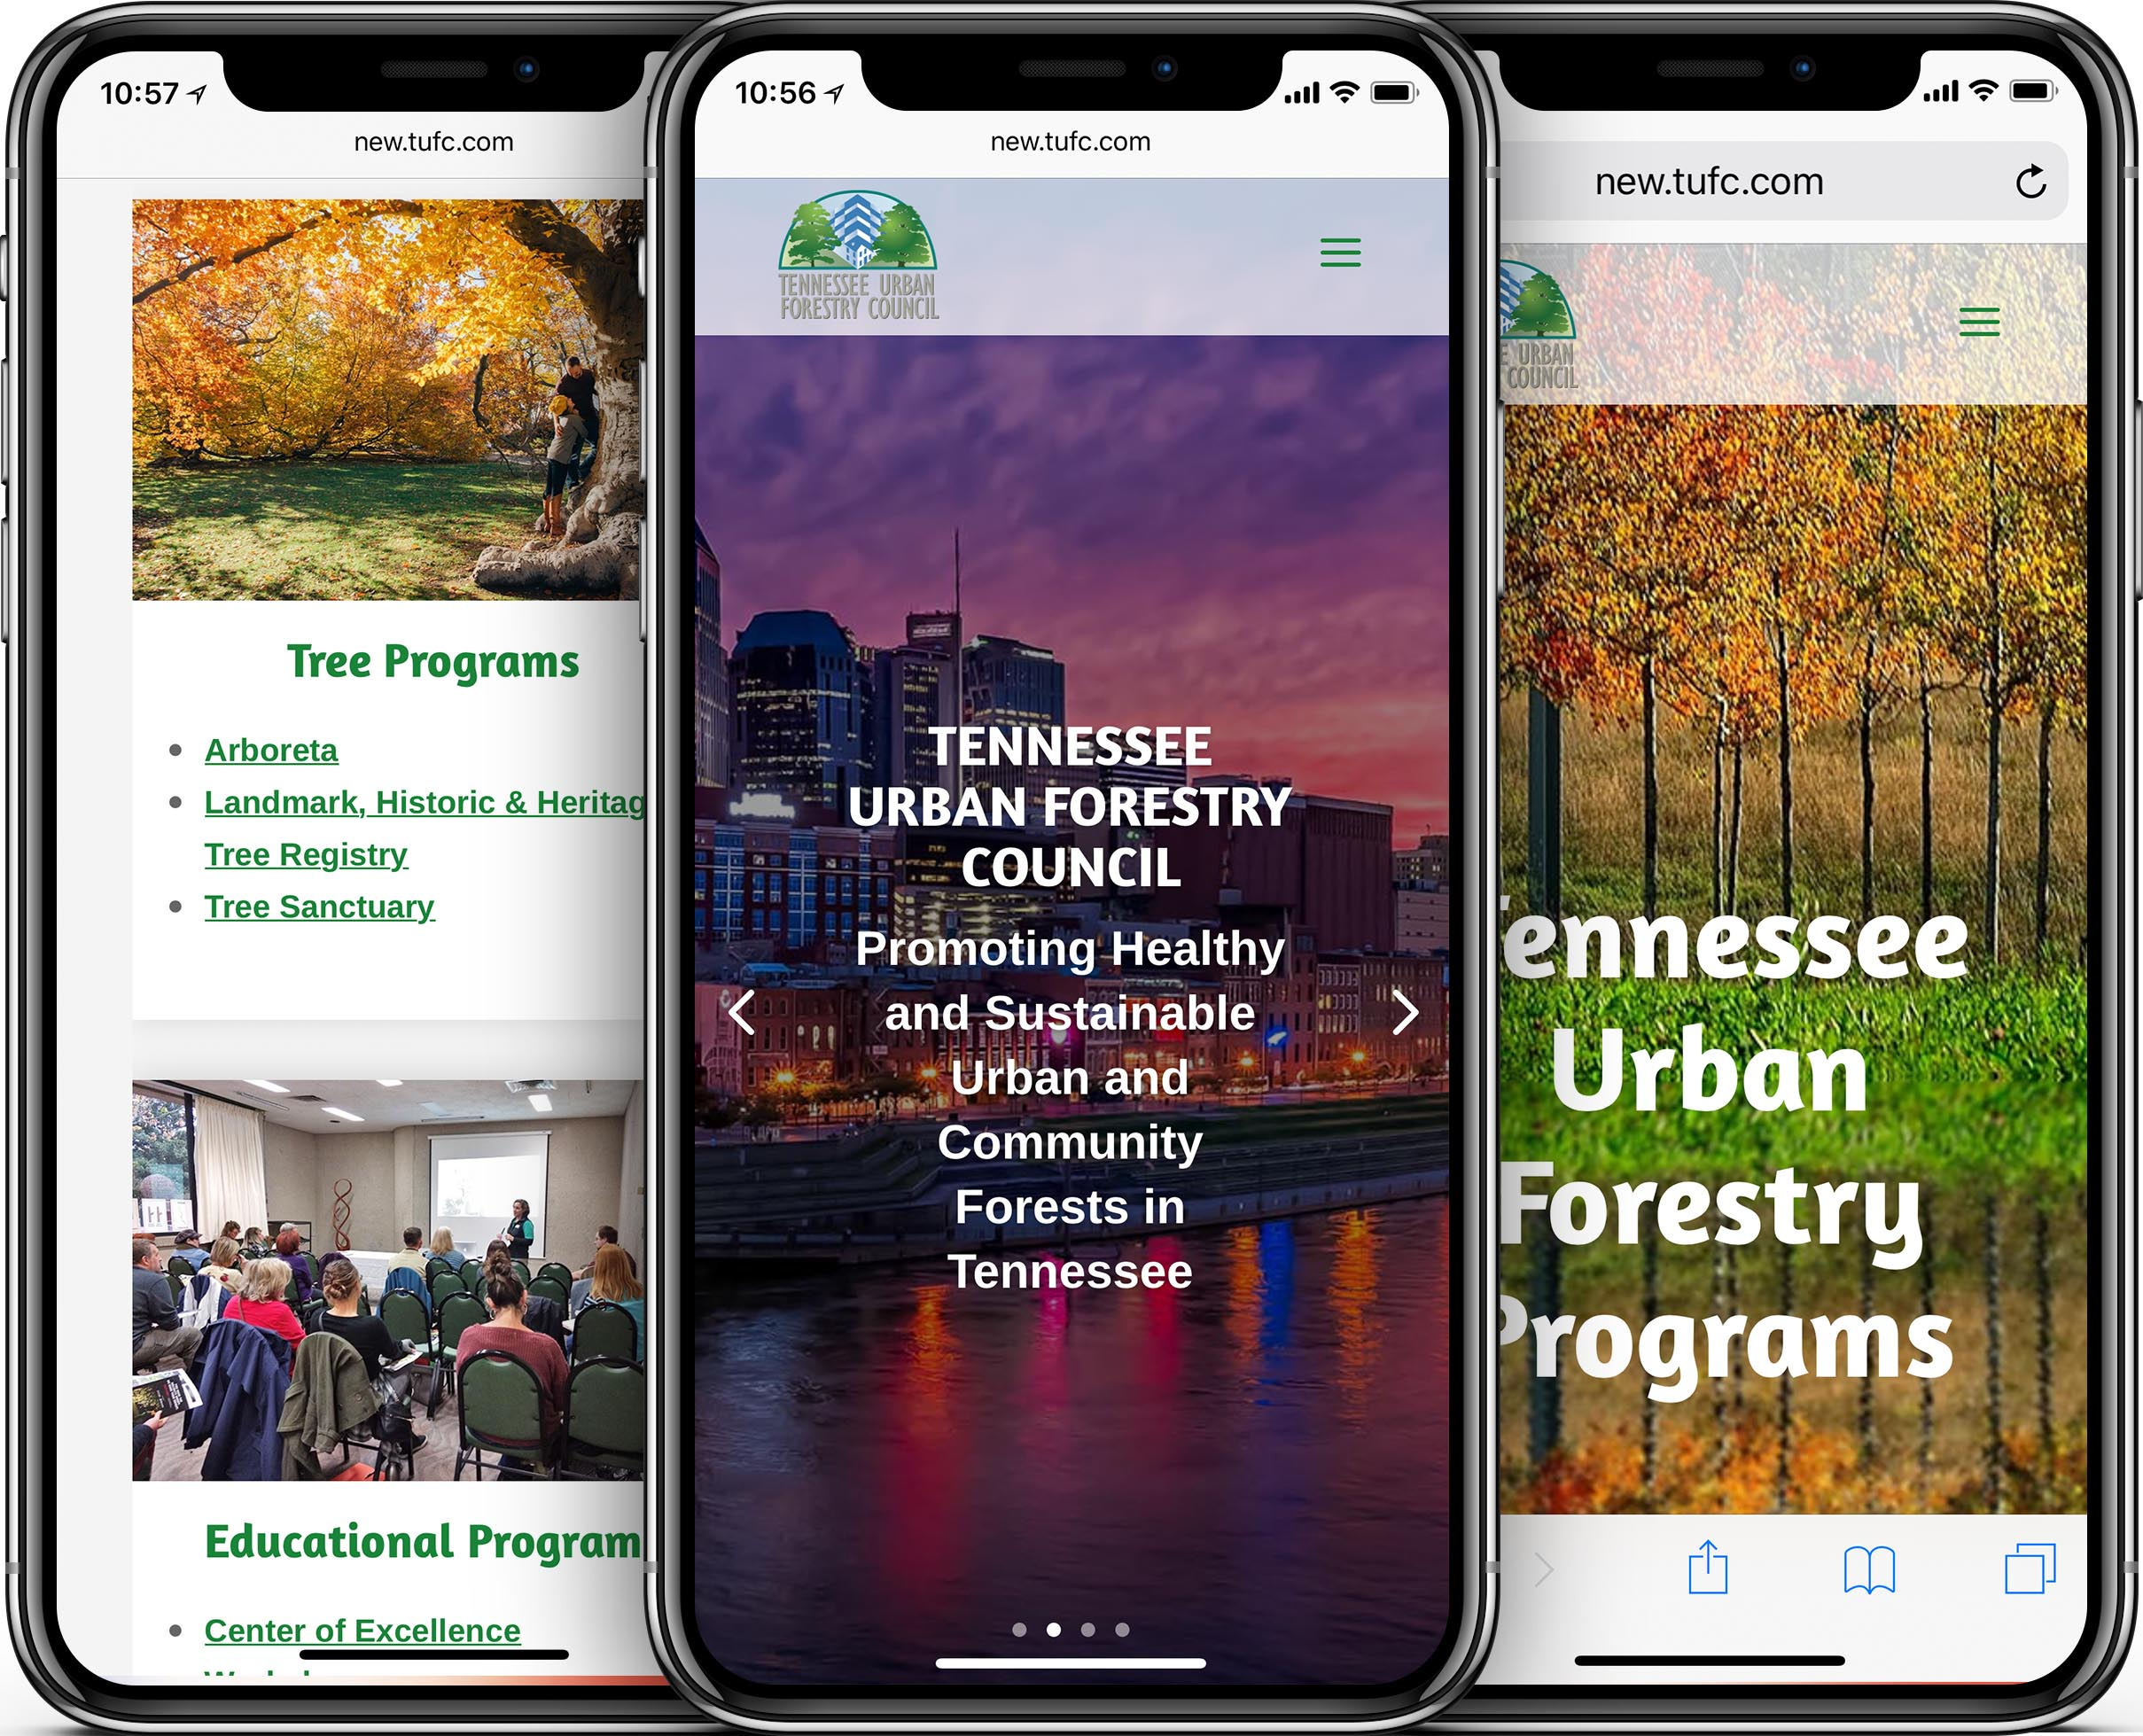 Tennessee Urban Forestry Council Mobile-Friendly Web Design